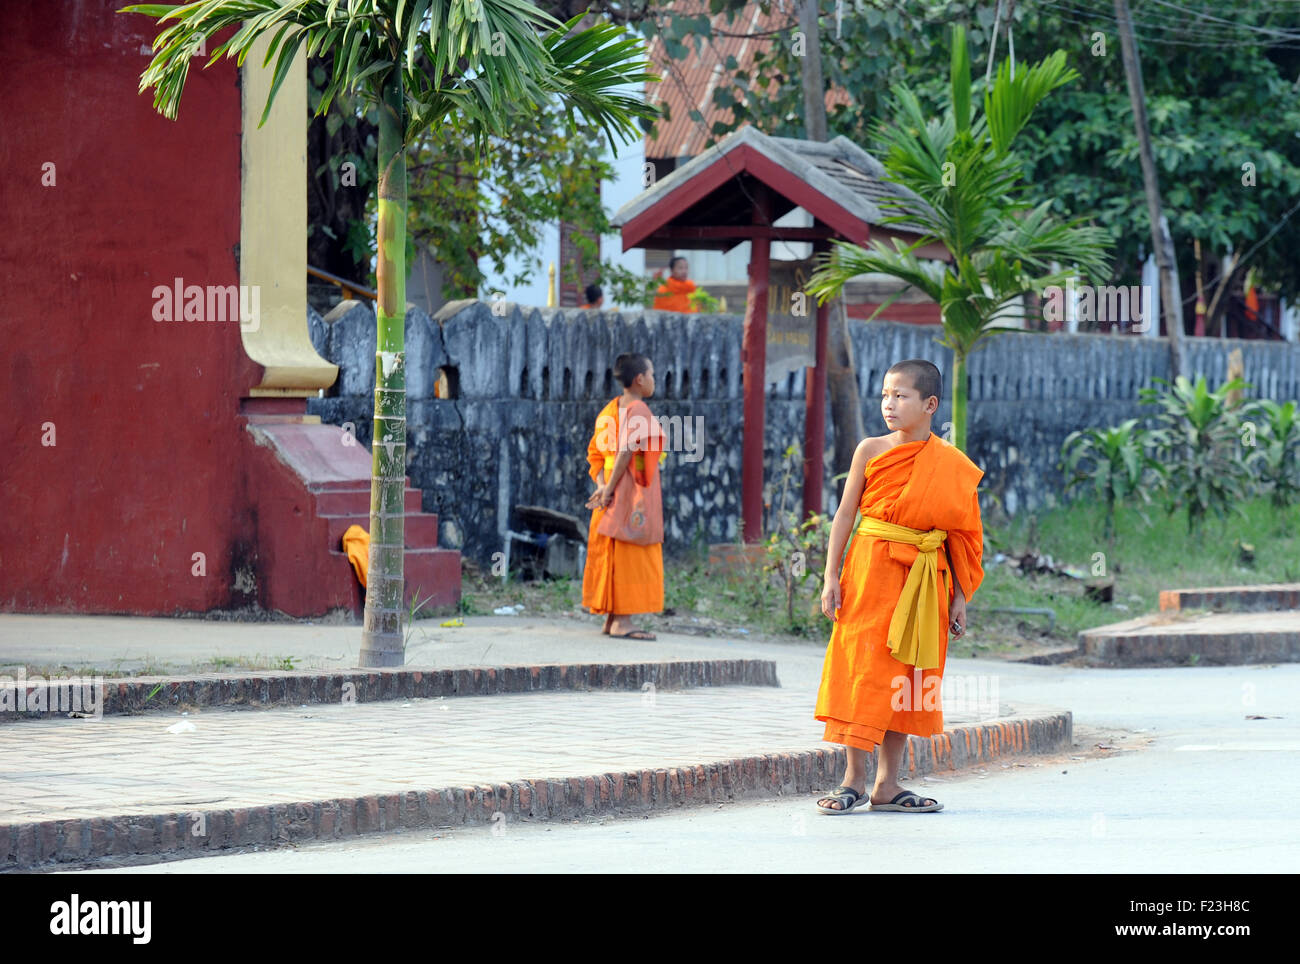 Lao novice monks in saffron robes Luang Prabang, Laos - Stock Image